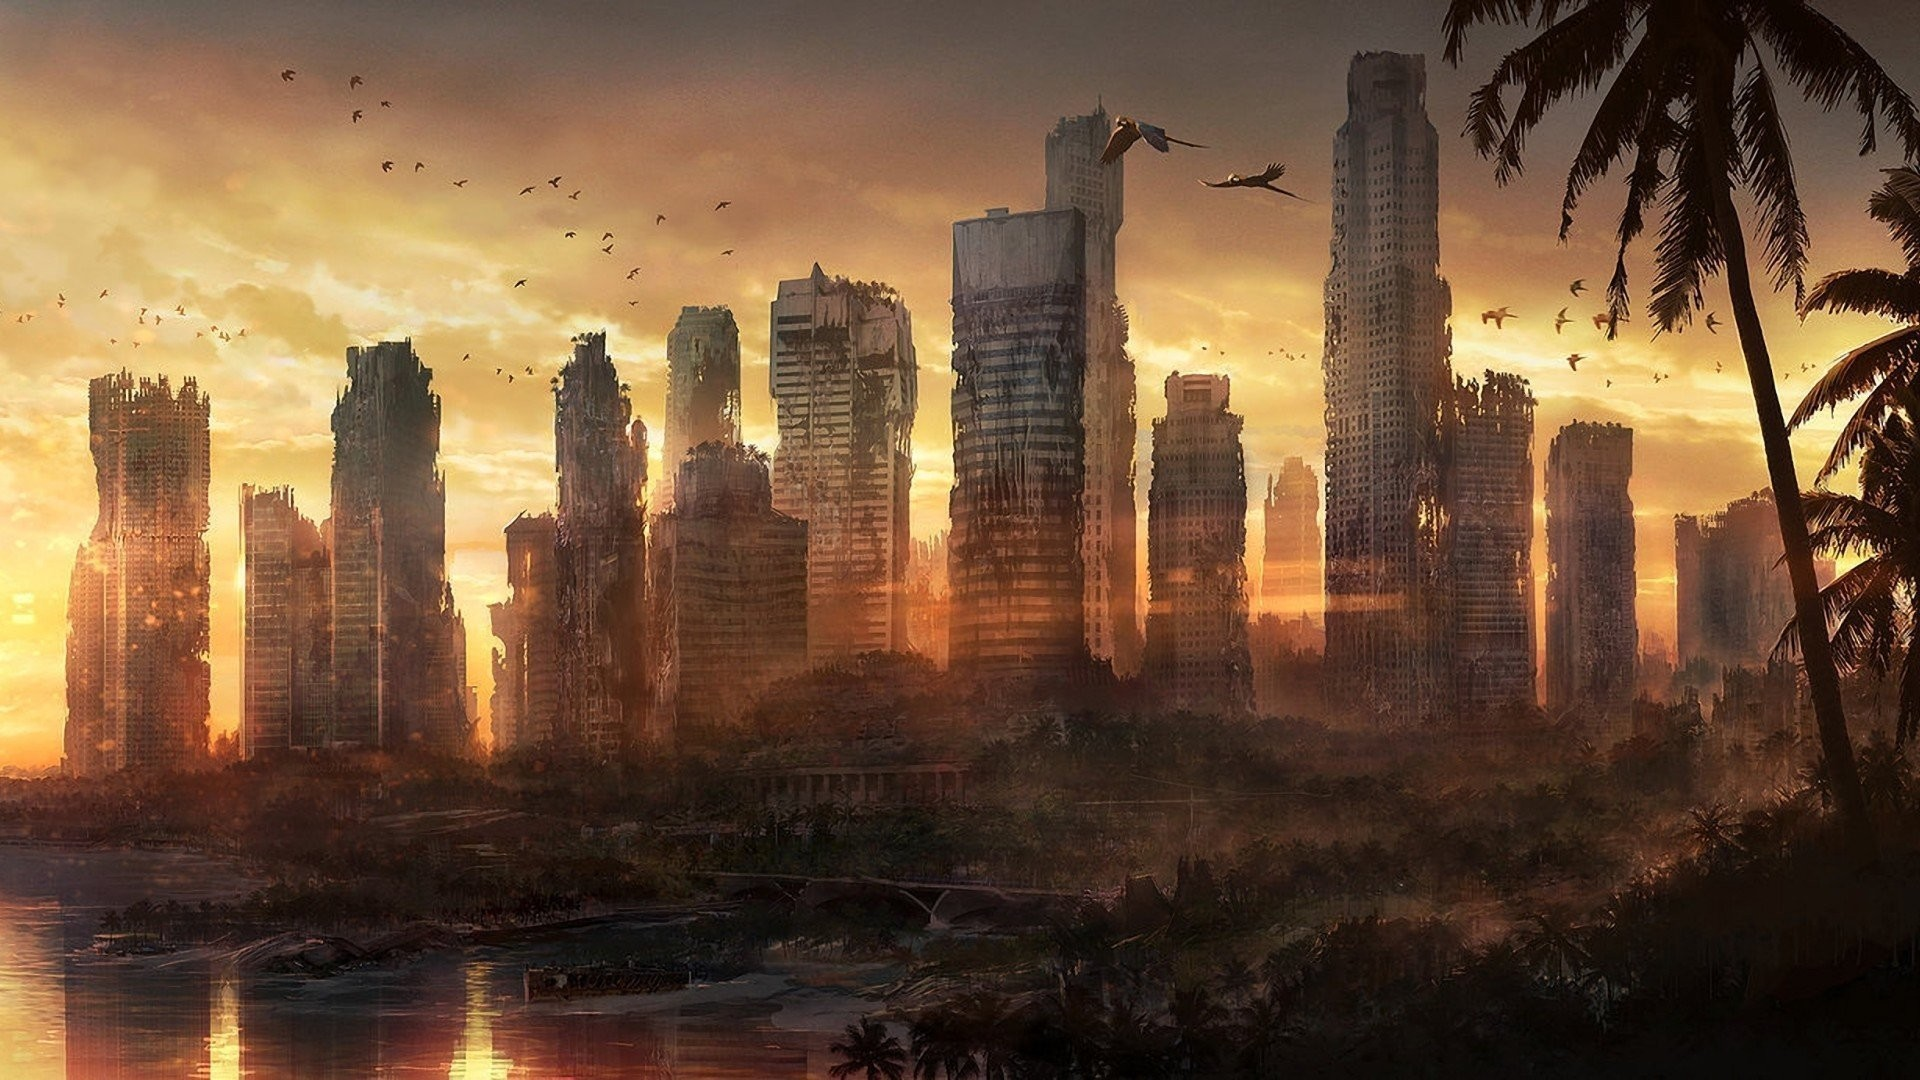 Dead City Destroyed Abandoned Forests Sunset Apocalyptic Cities